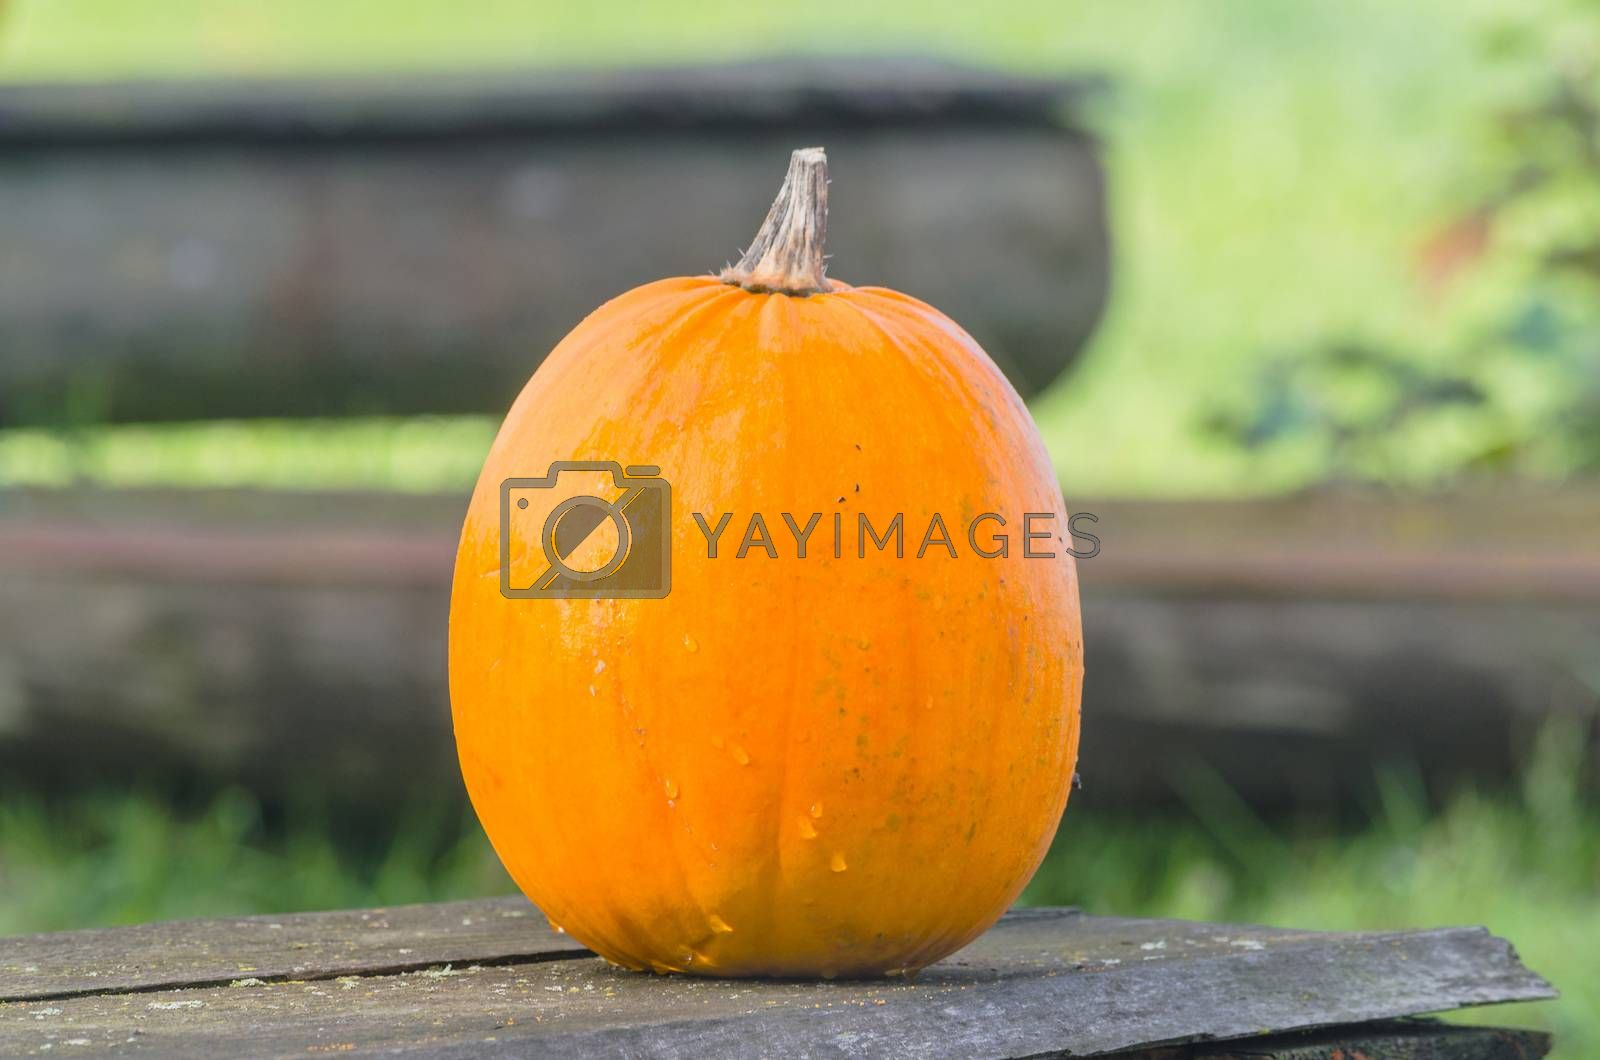 Royalty free image of Beautiful orange pumpkin      by JFsPic